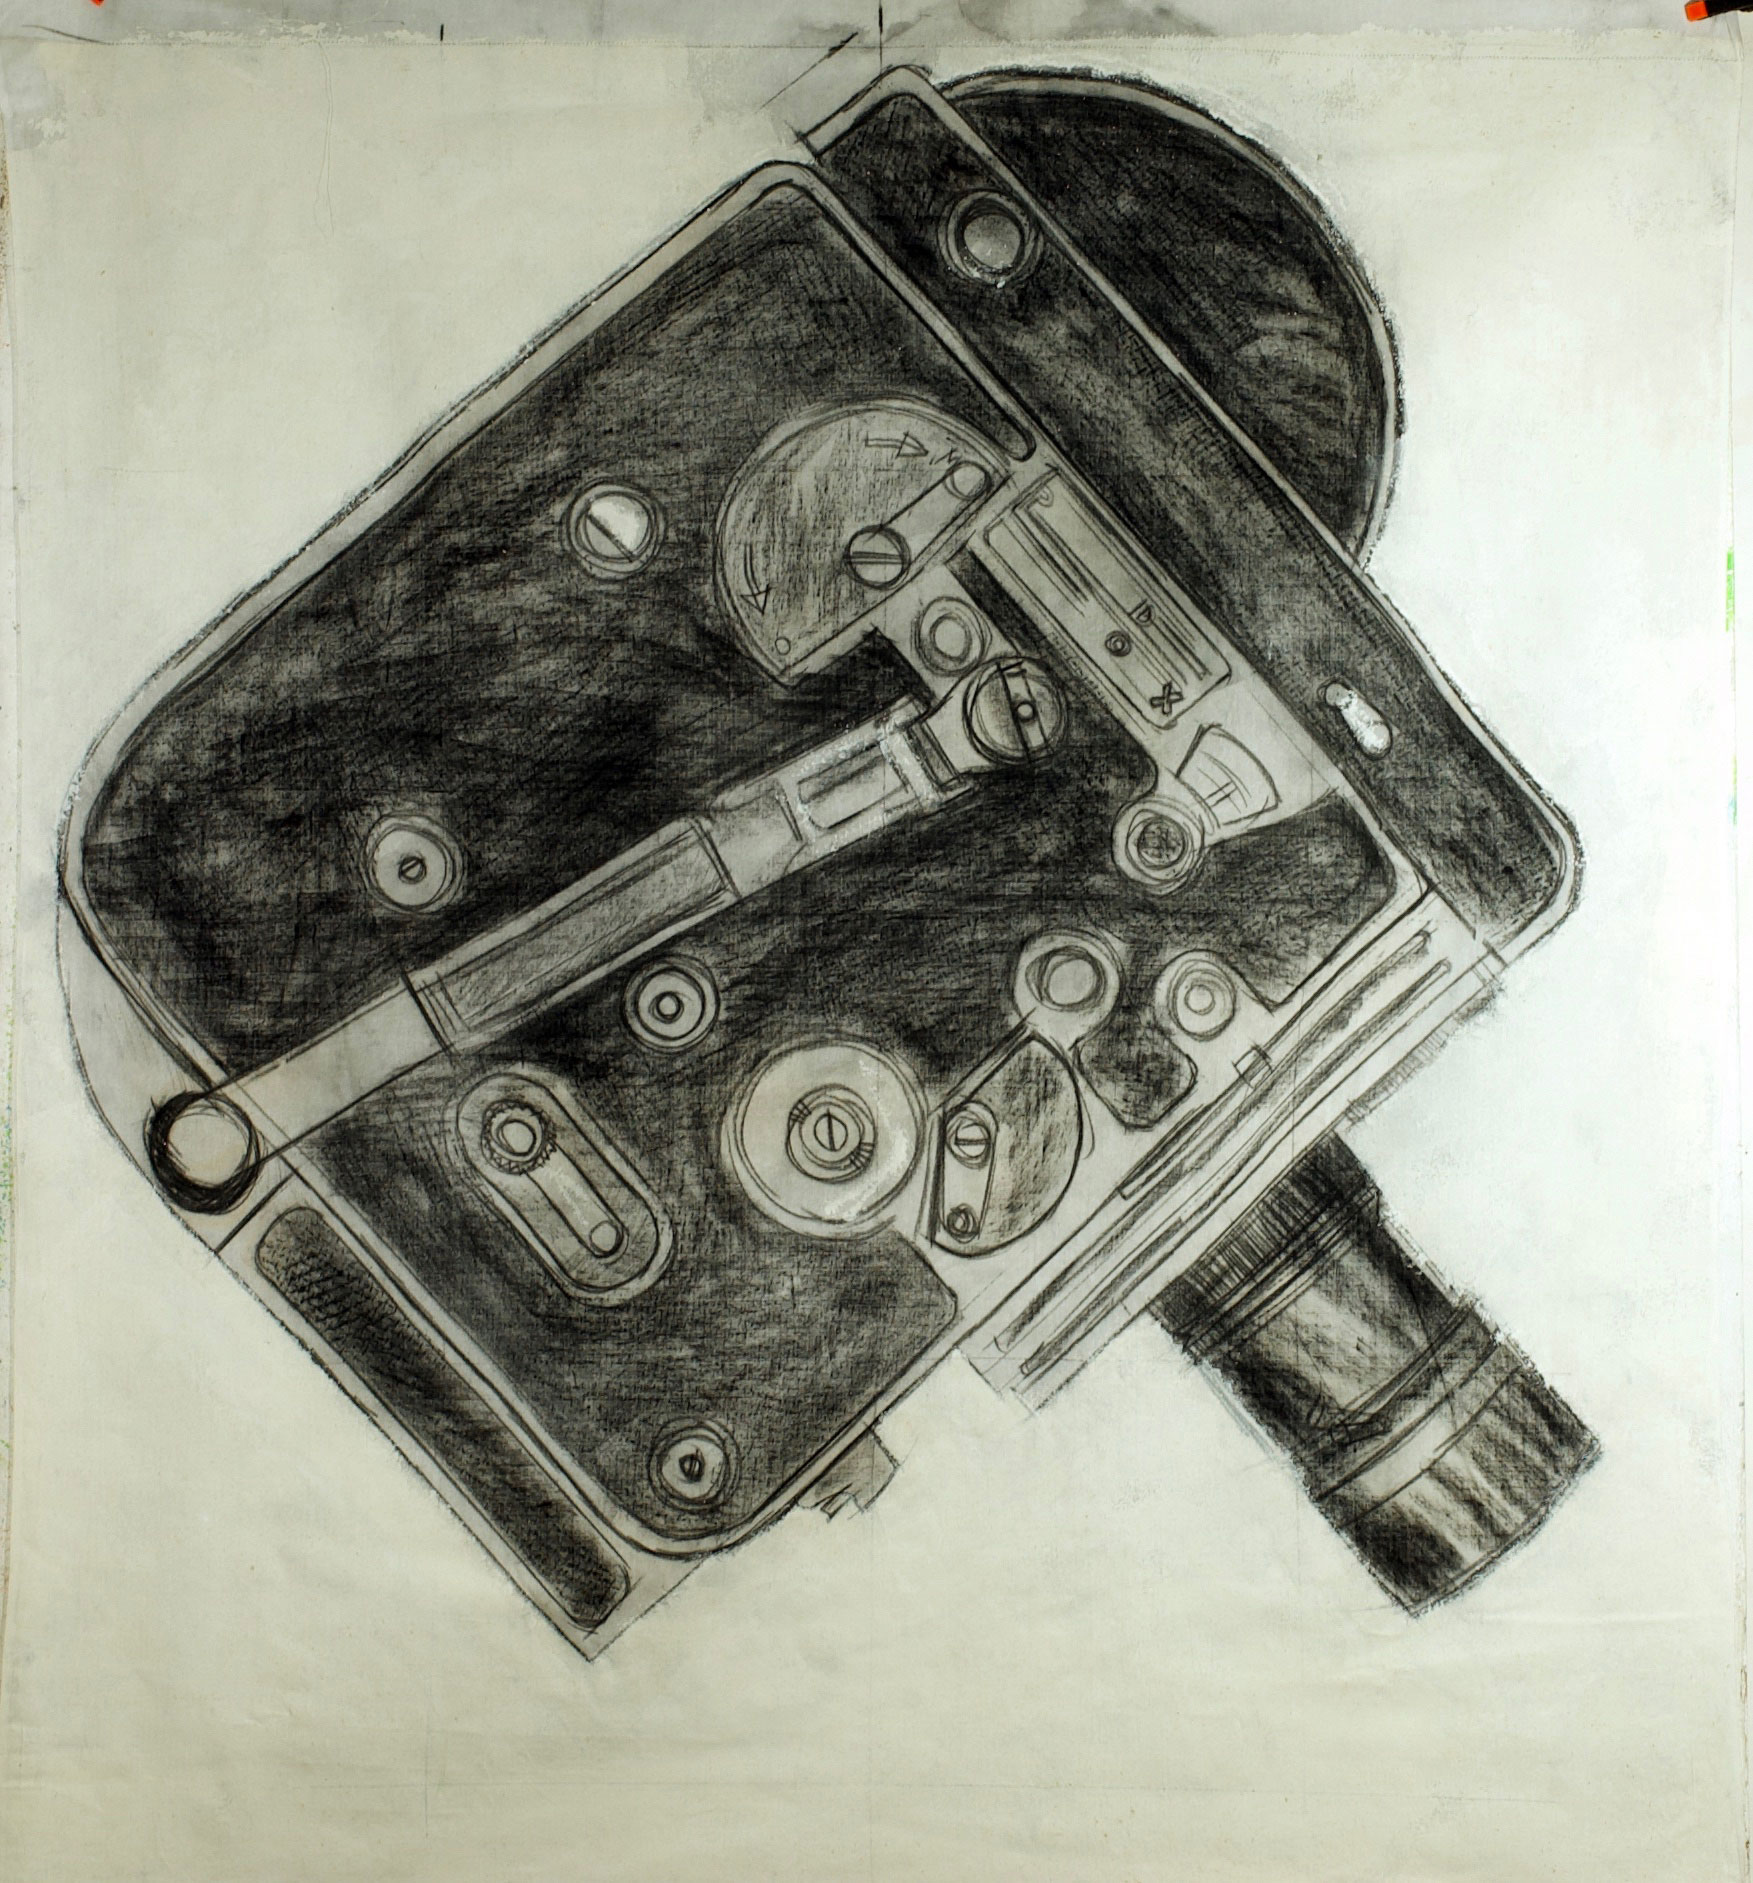 6-x-4'-charcoal-drawings-on-fabric-(4).jpg